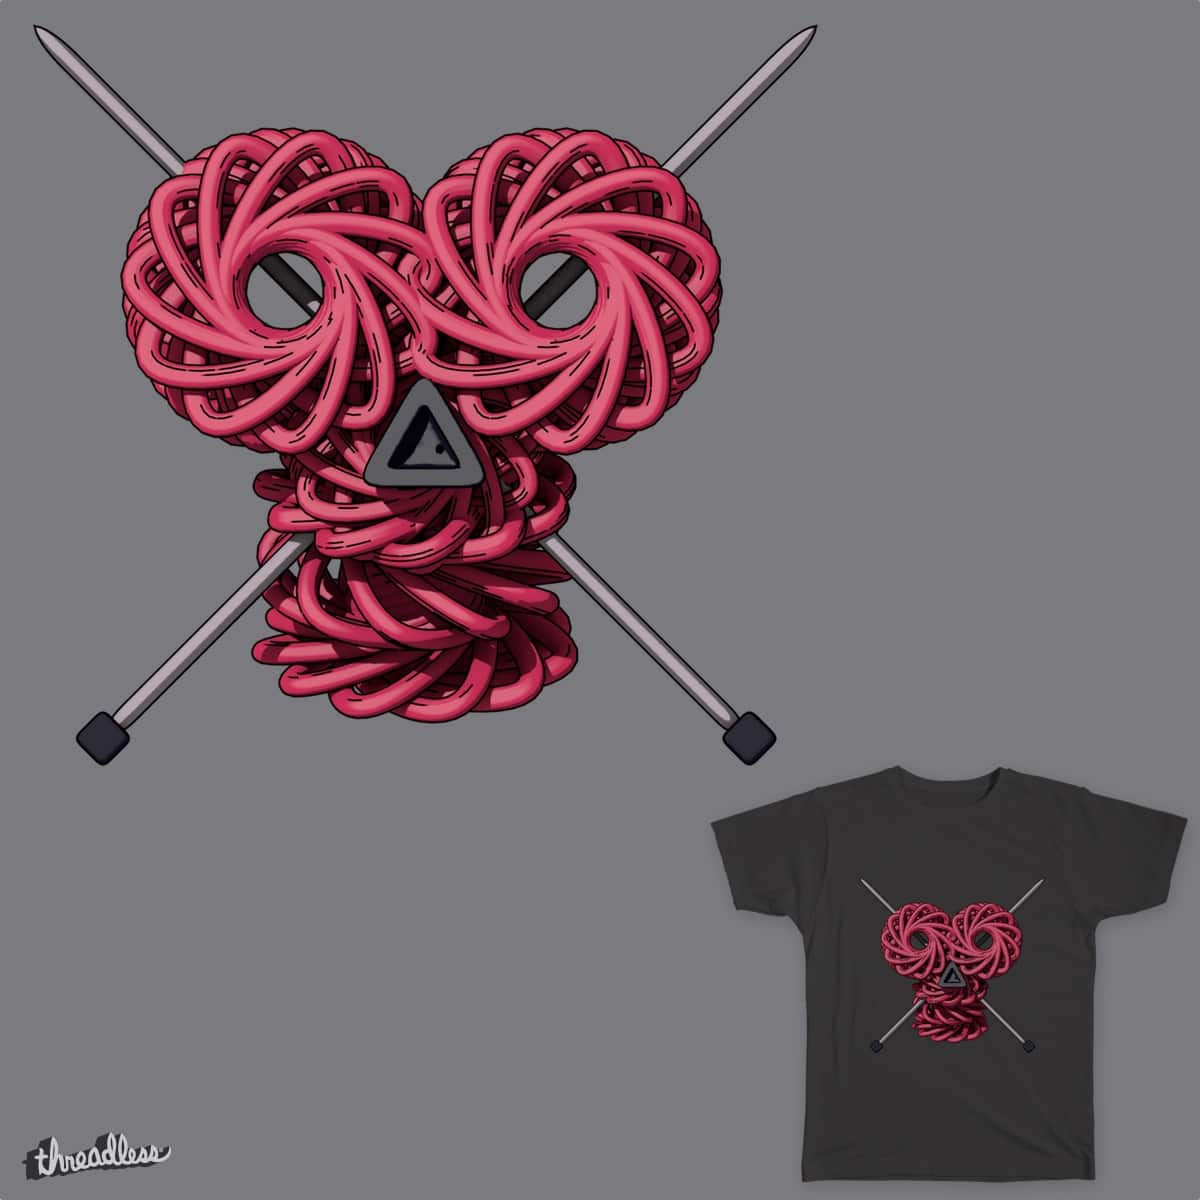 Knitting pirate by usinglight on Threadless